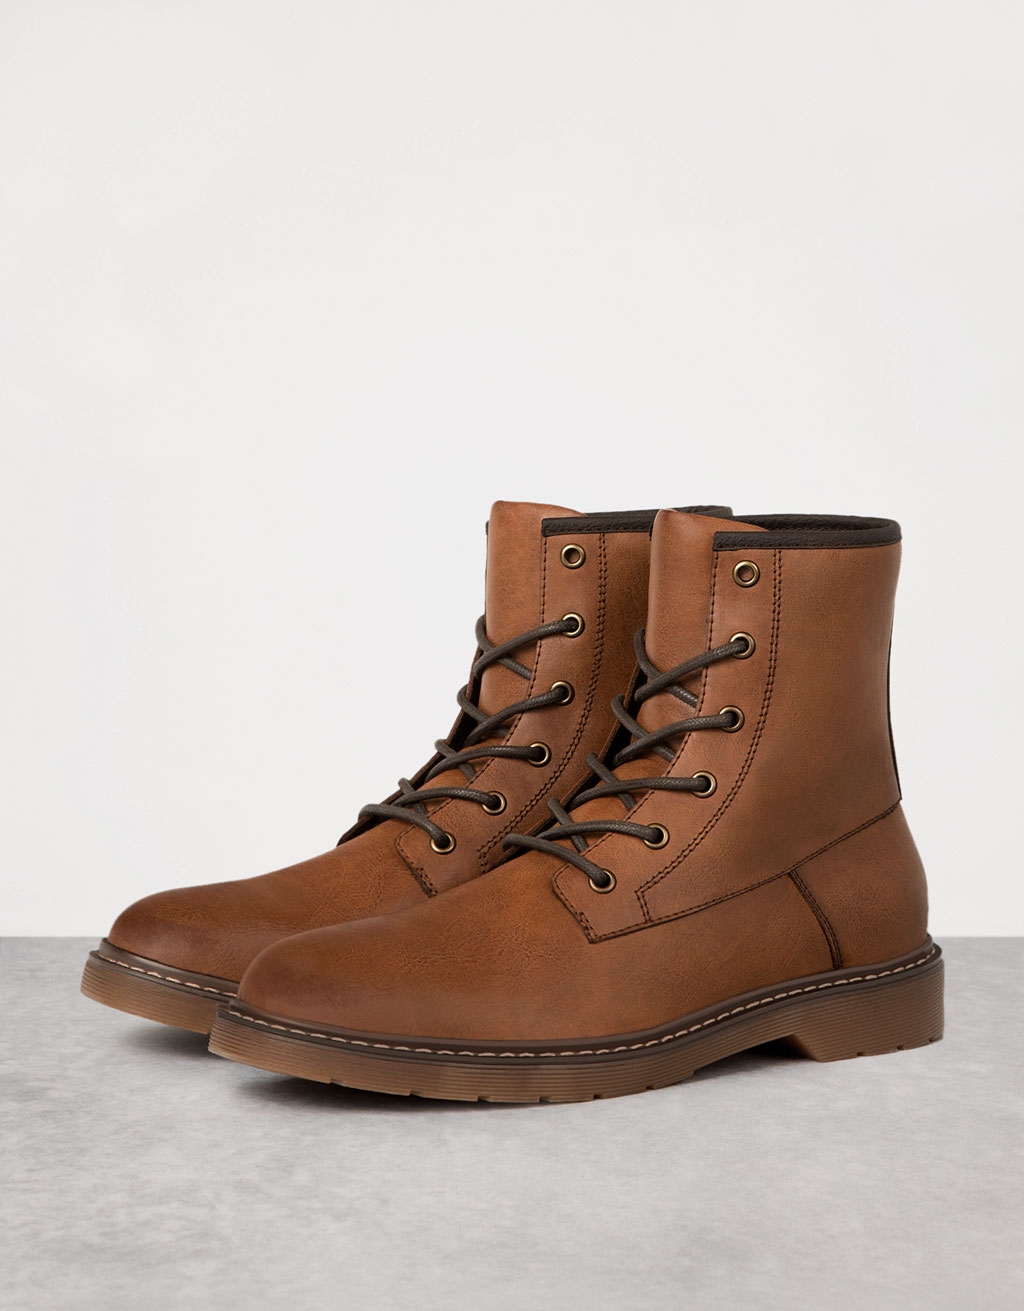 Men's lace-up dressy boots